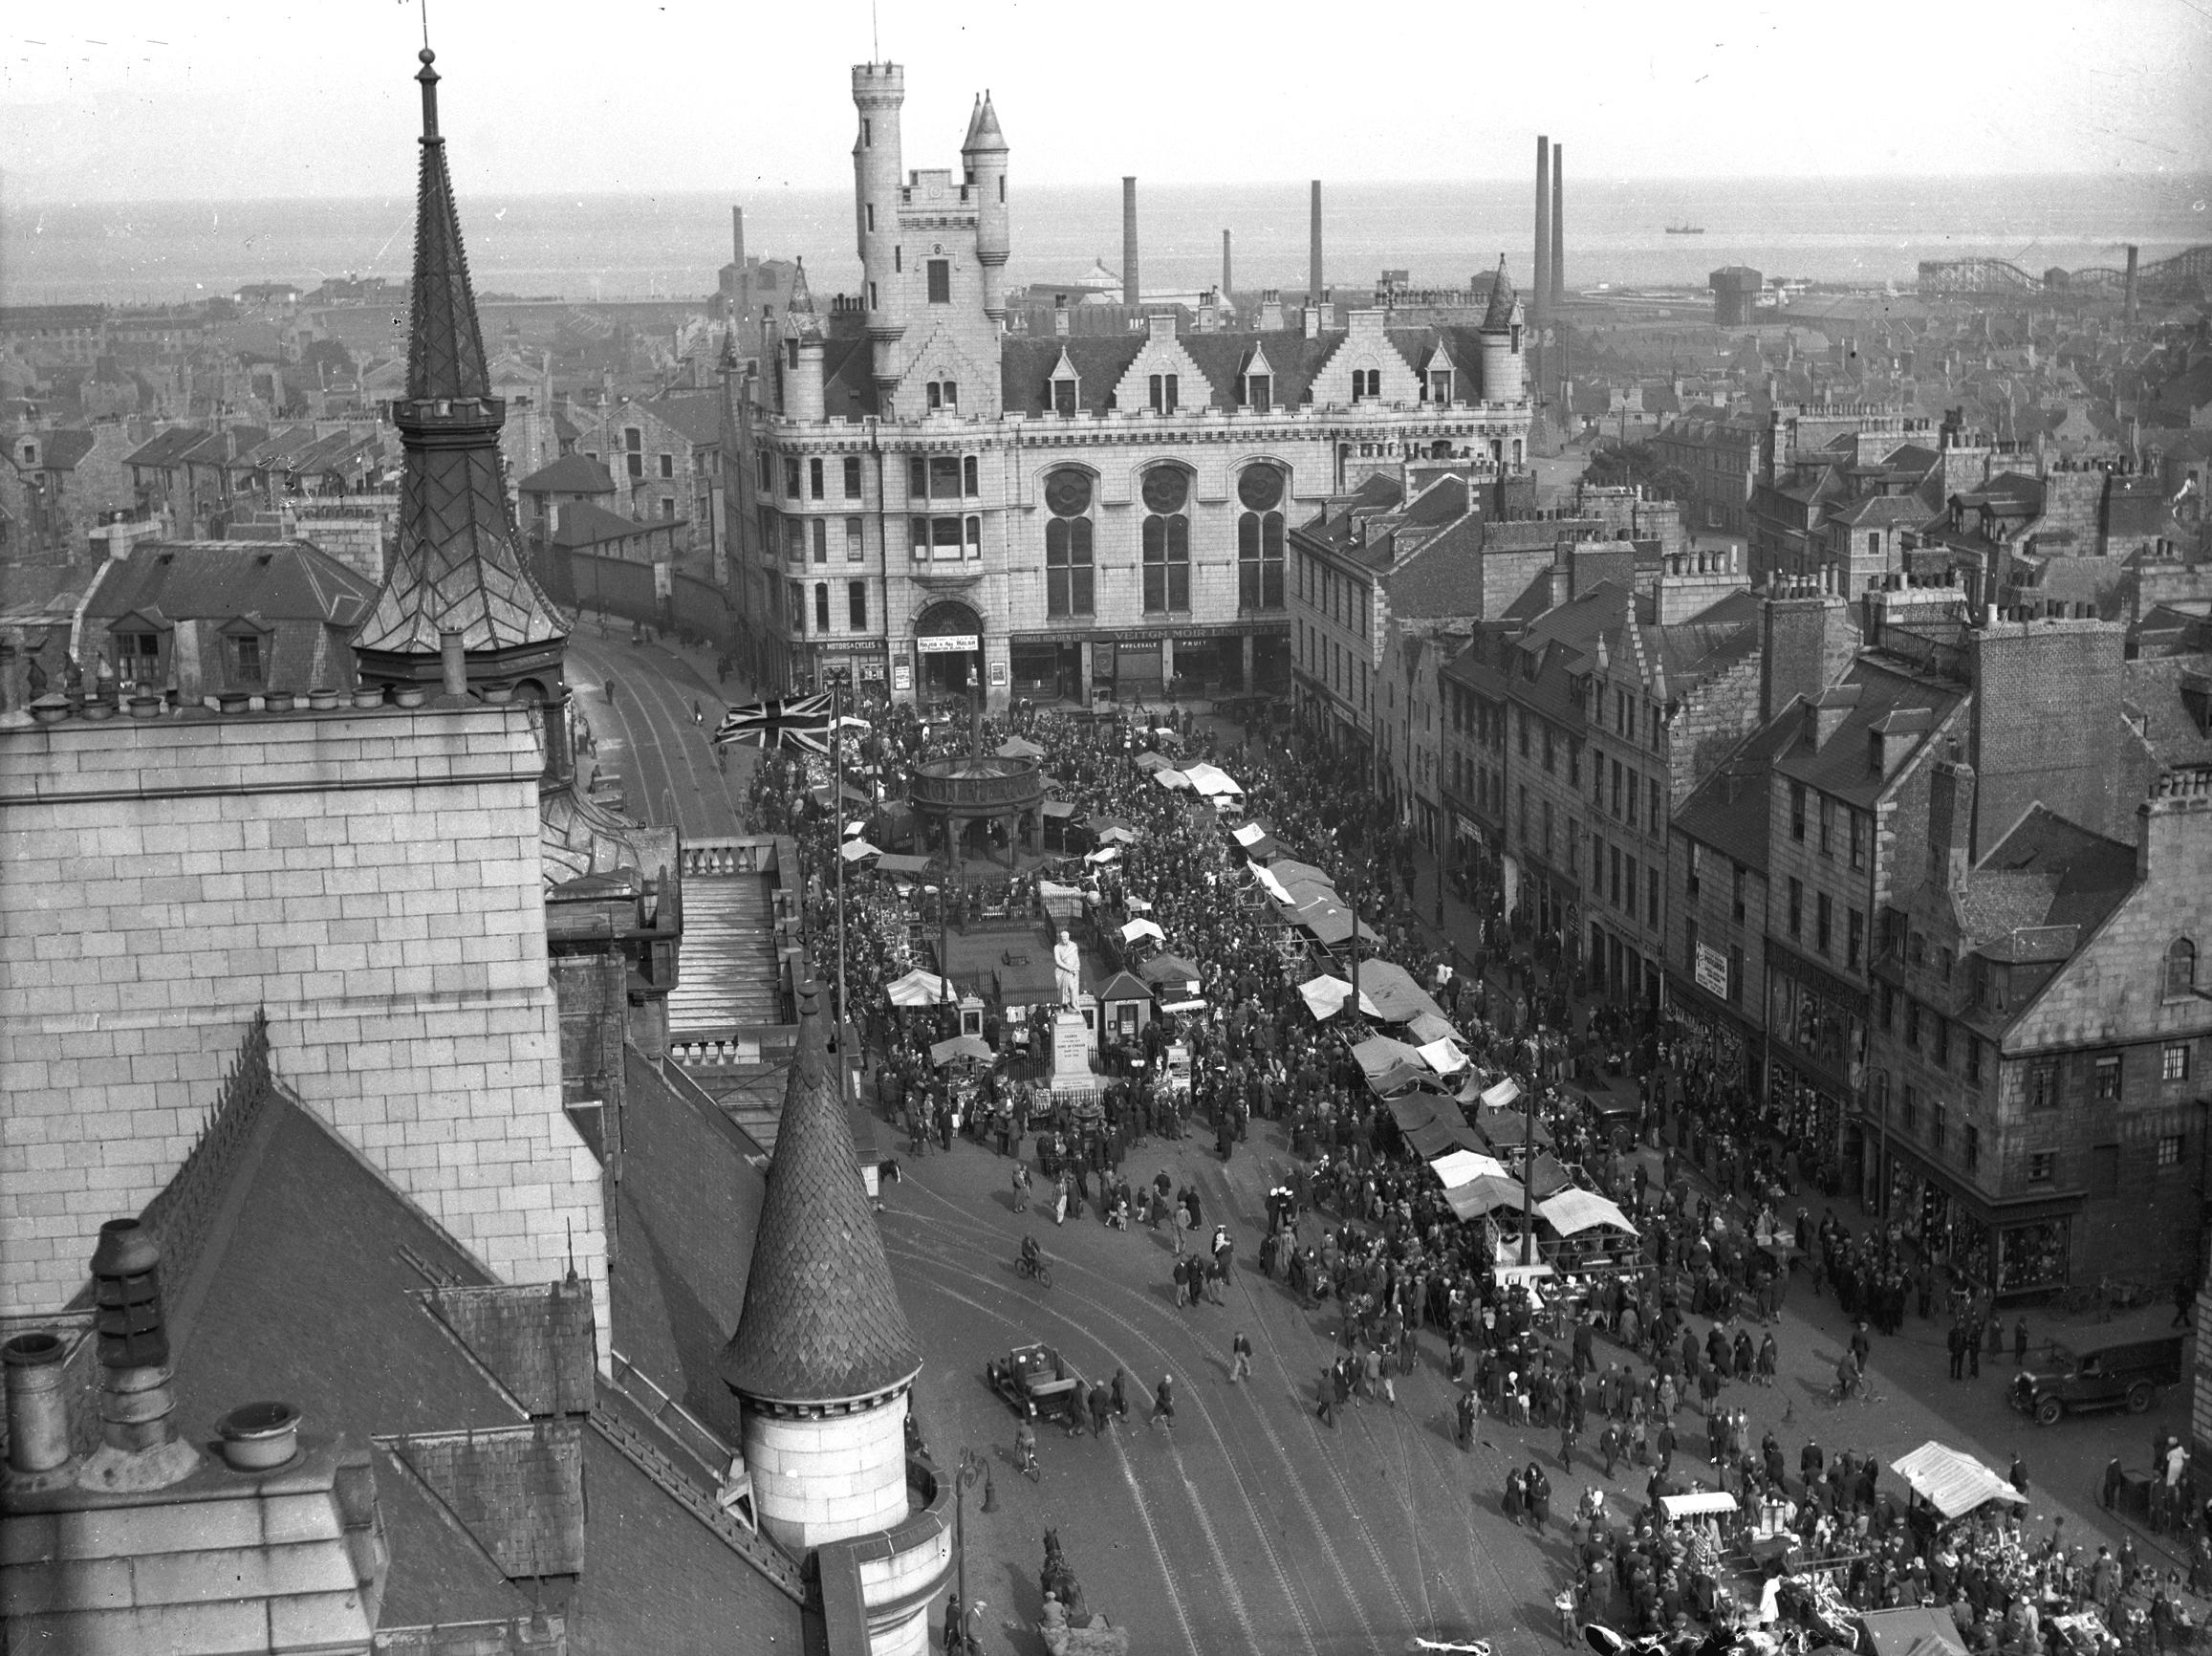 Hundreds of North-east folk flocked to the Timmer Market in Aberdeen's Castlegate in August 1934. The Timmer Market had been held annually in Aberdeen for one day in August since before 1773. Until 1934 it was set up in the Castlegate, but from 1935 was held on the market stance off Justice Street.